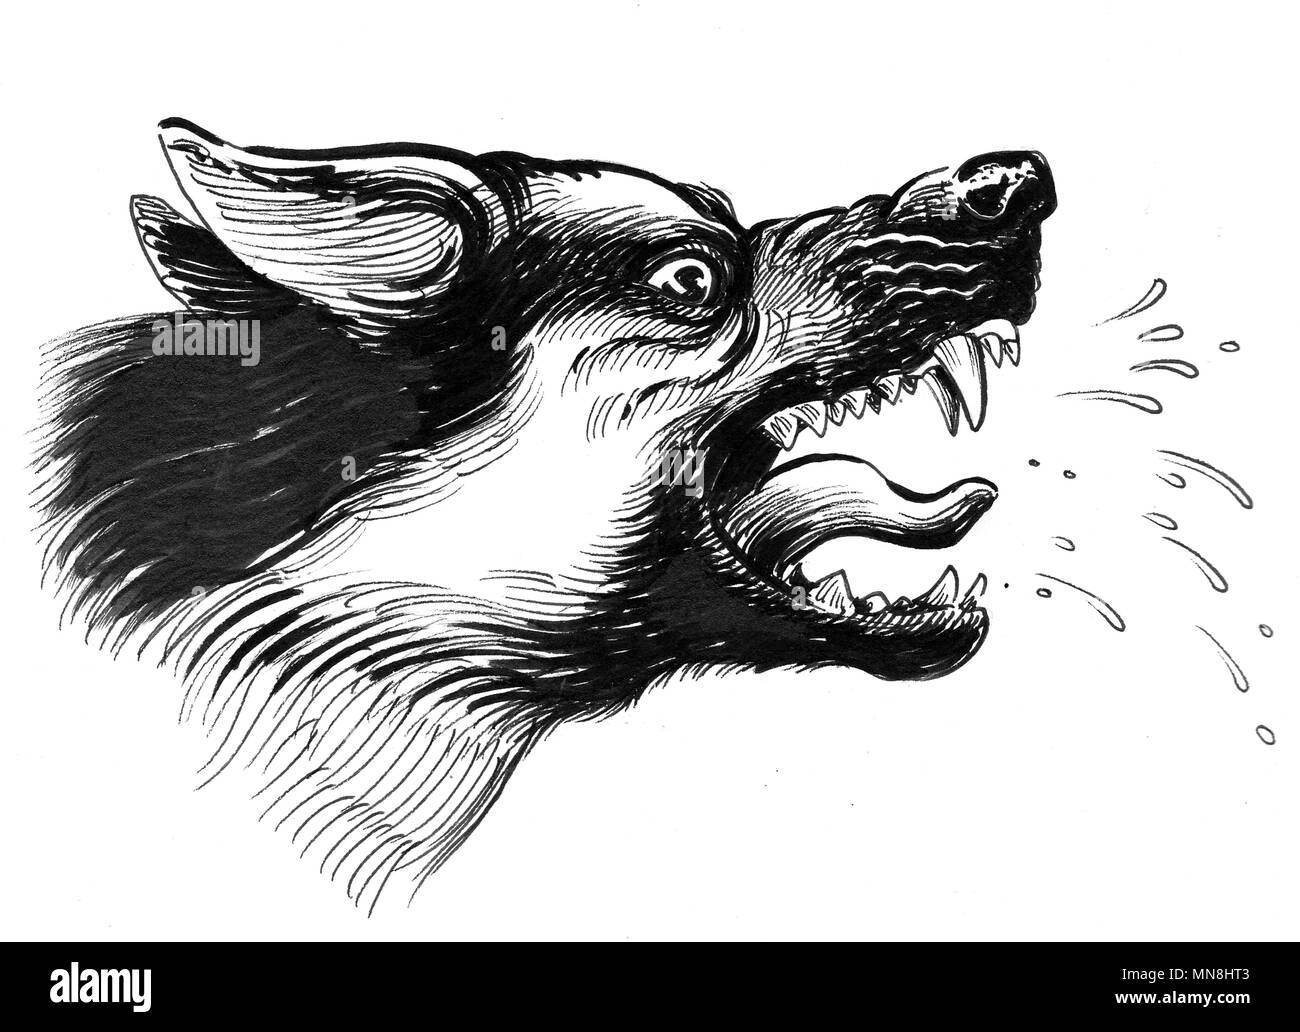 Aggressive Dog Black And White Stock Photos Images Alamy Mad Wiring Diagram Ink Illustration Image